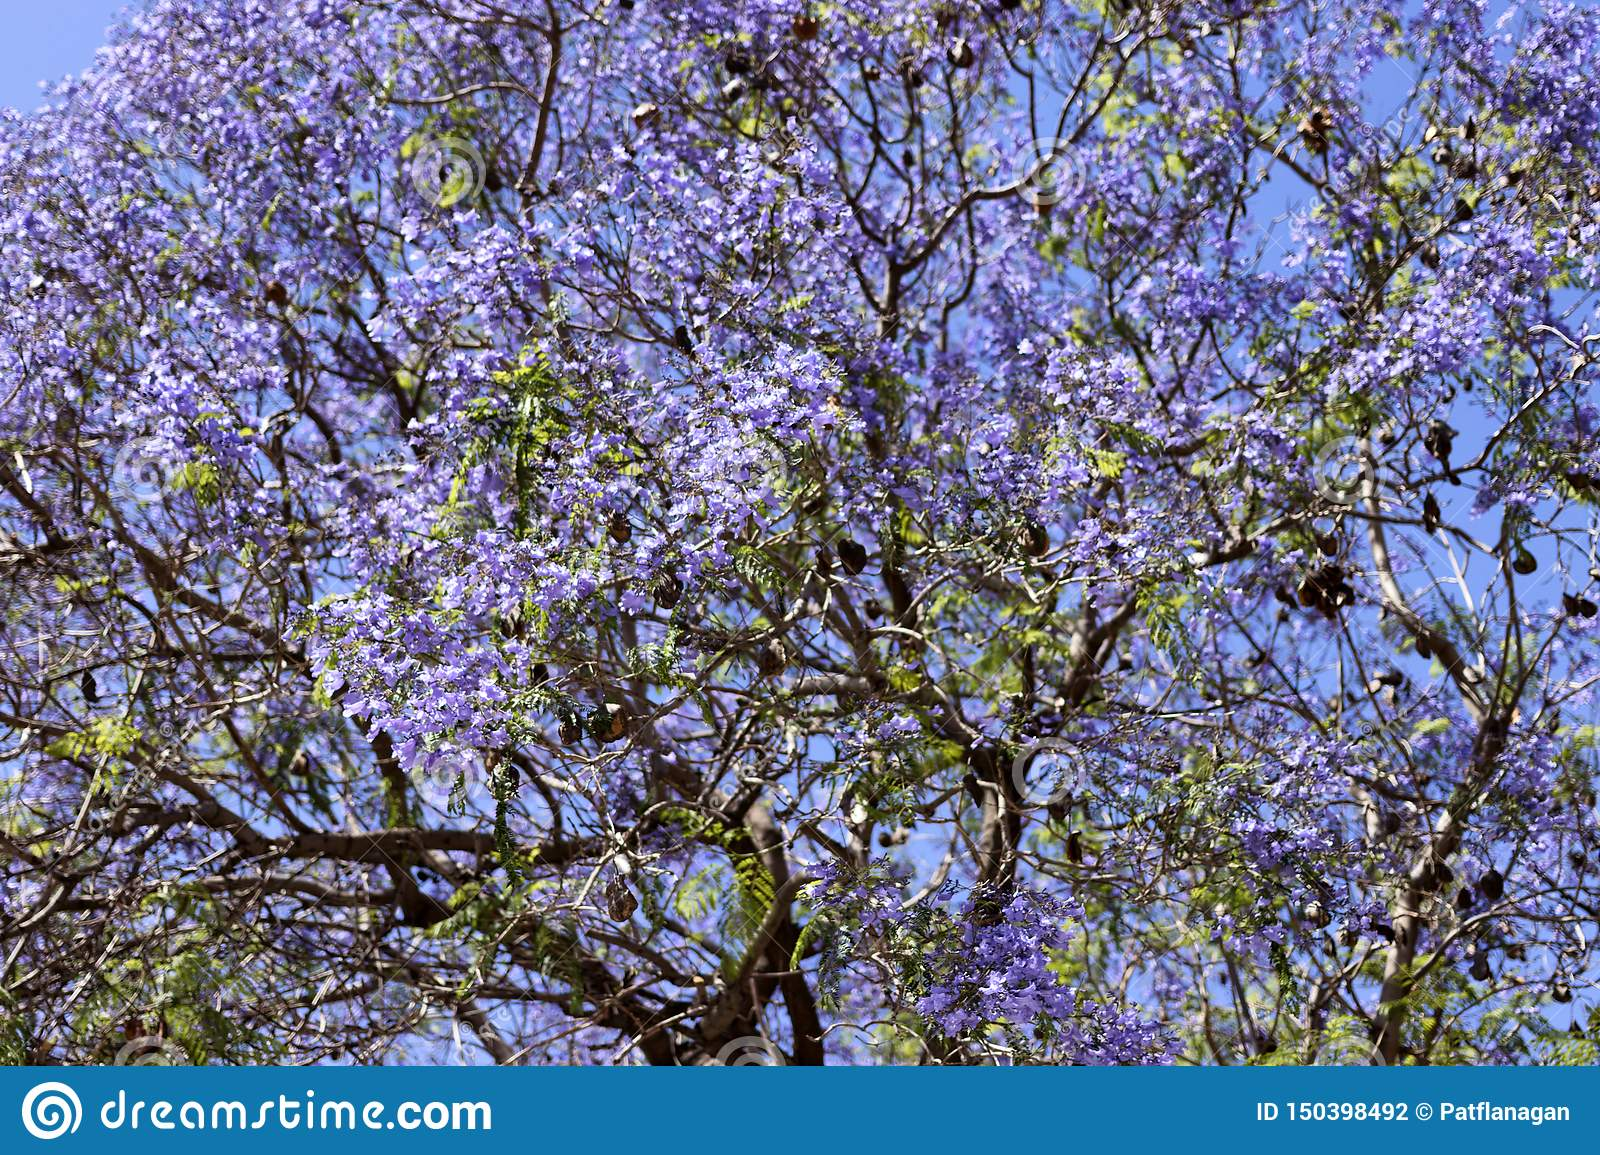 Photo of a tree with purple flowers